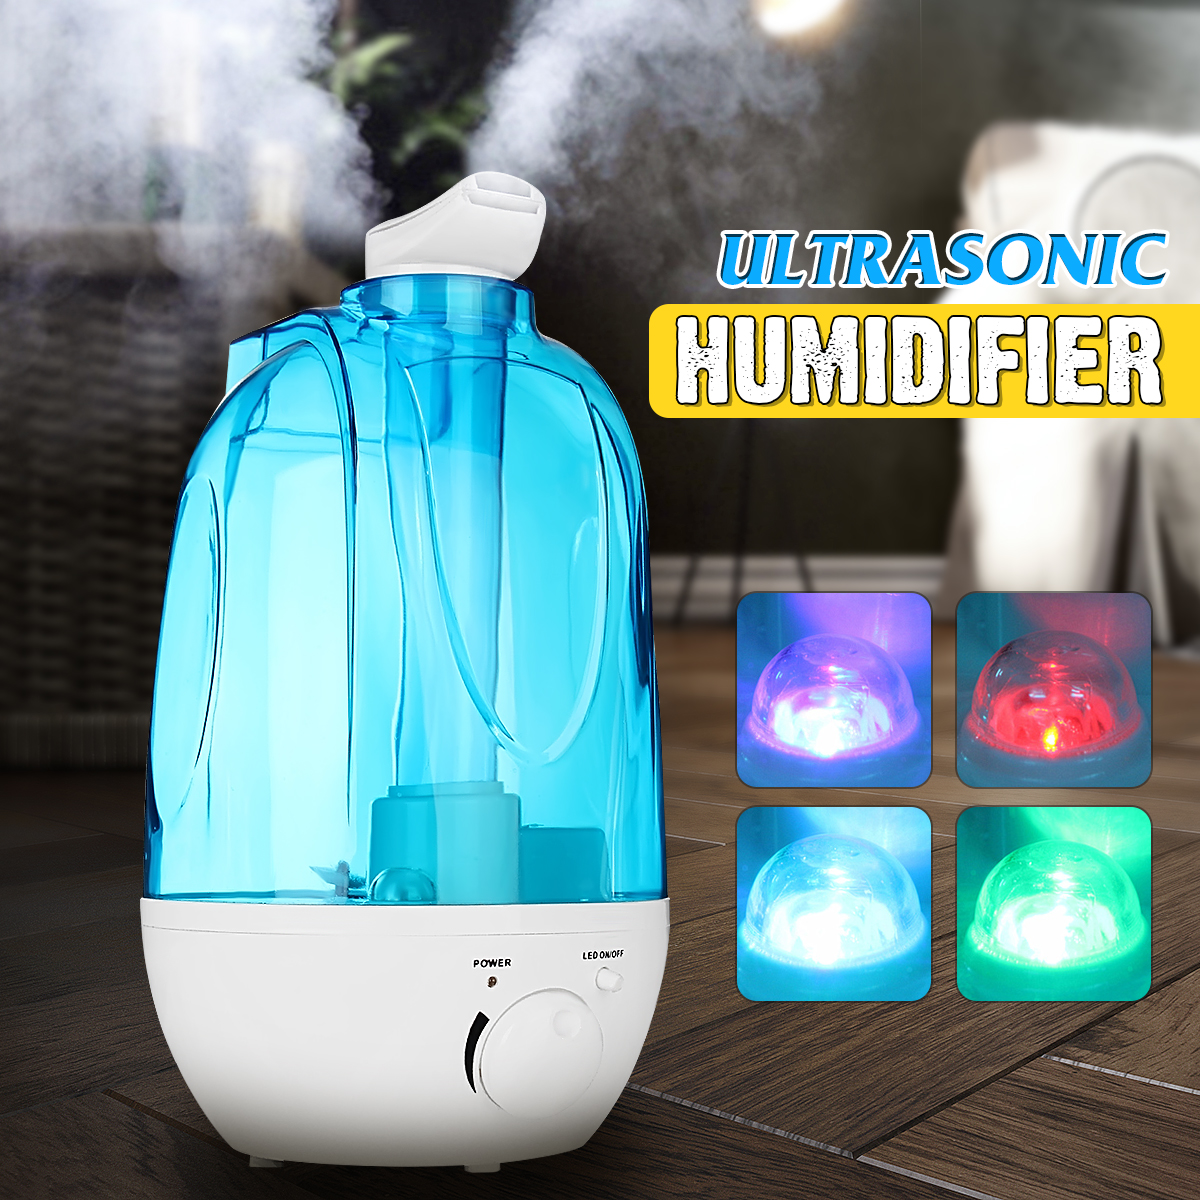 4L Automatic Air Ultrasonic Humidifier Electric USB LED Lights Air Aroma Aromatherapy oil Diffuser Mist Maker Fogger Purifier 4l automatic air ultrasonic humidifier electric usb led lights air aroma aromatherapy oil diffuser mist maker fogger purifier